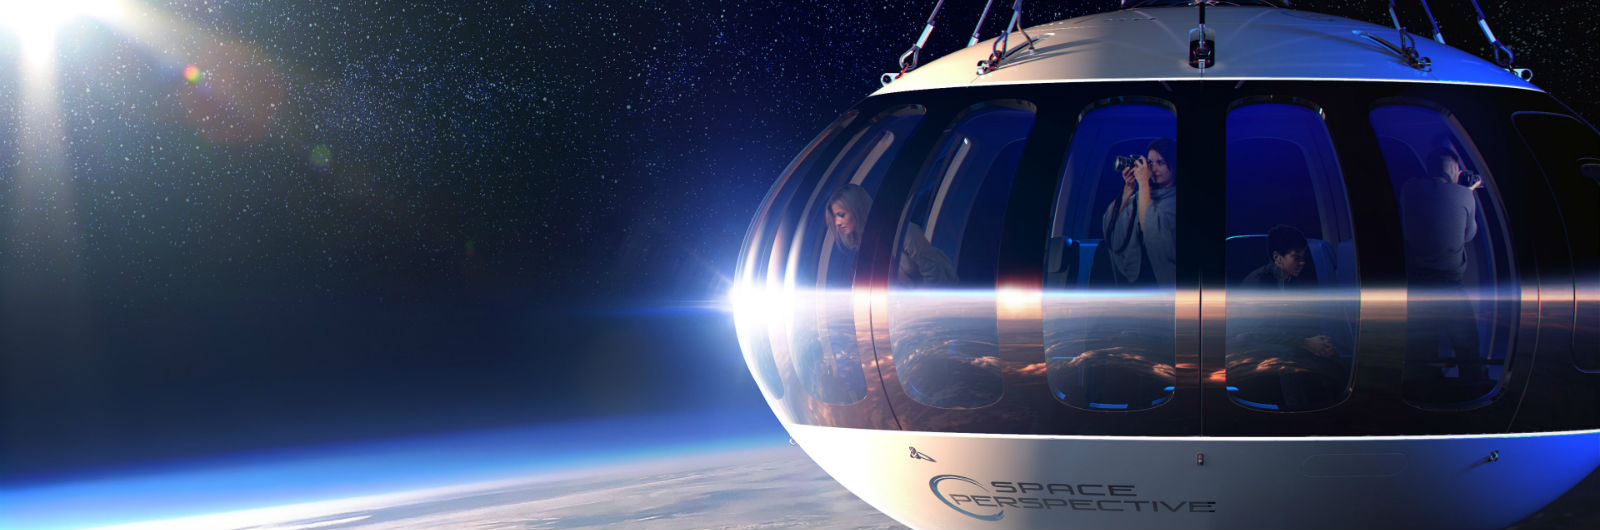 You Can Take This Giant Balloon to the Edge of Space